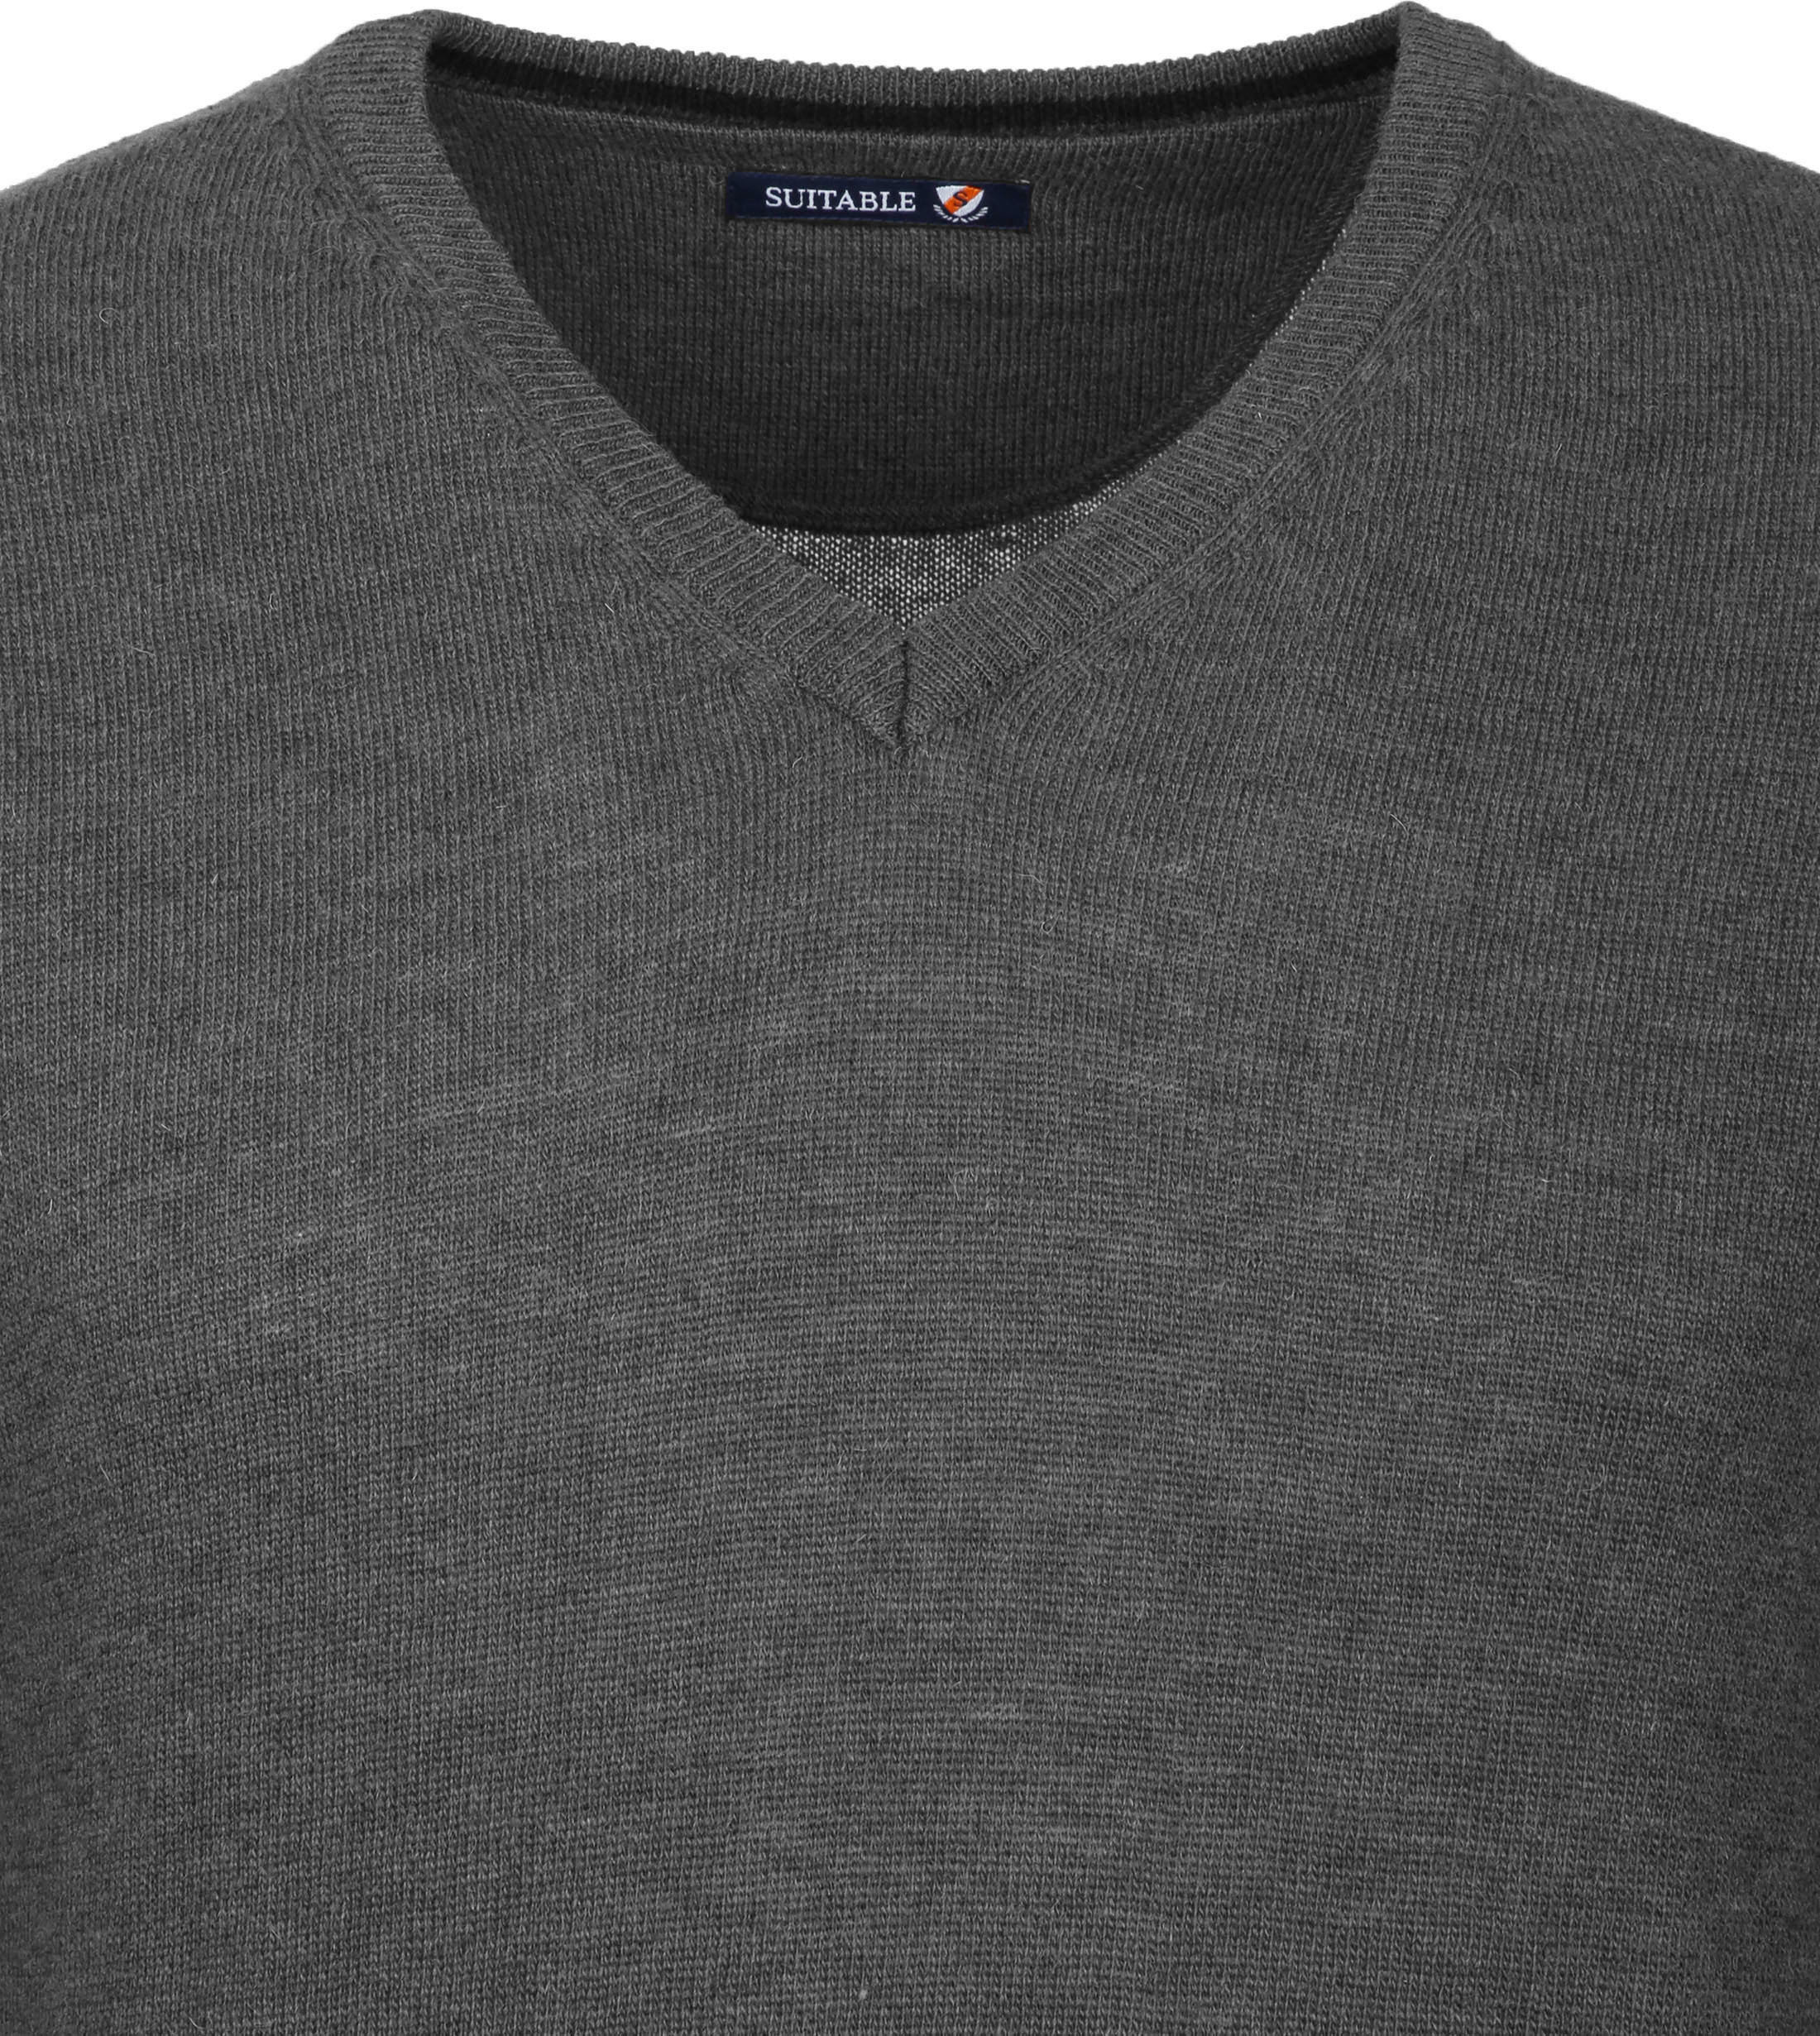 Suitable Pullover V-Neck Lambswool Grey foto 2